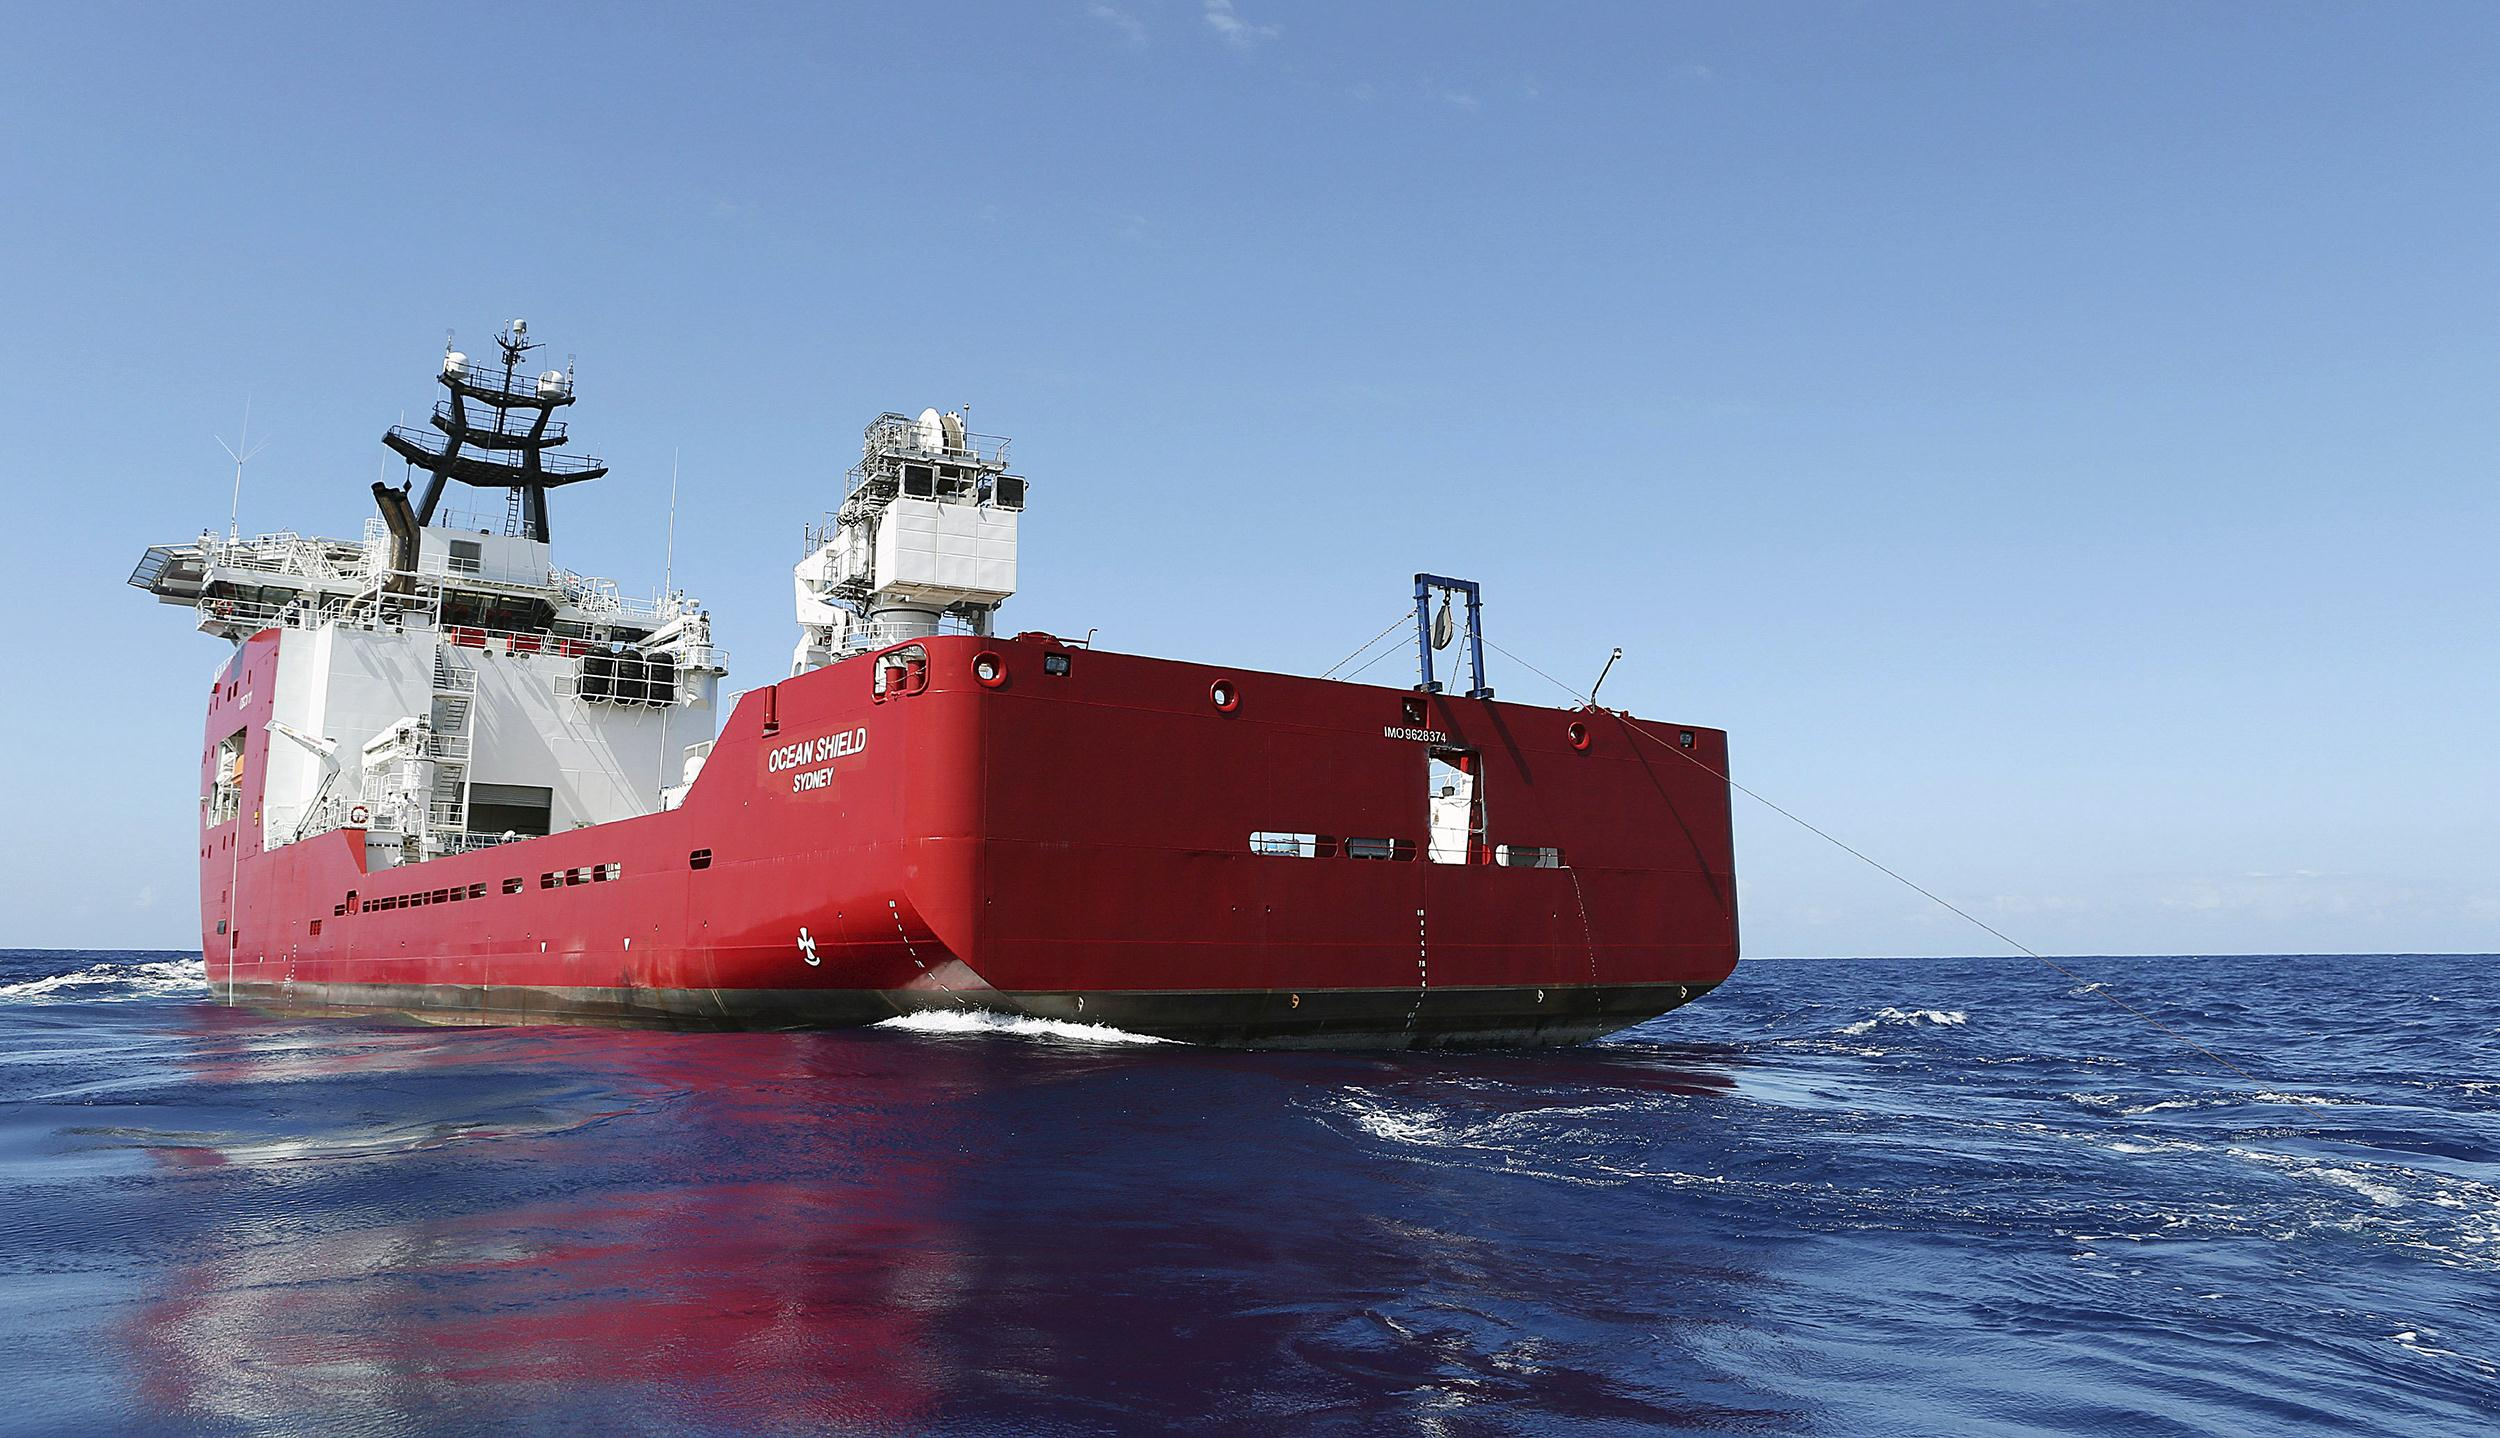 Image: The Australian Defense vessel Ocean Shield tows a pinger locator